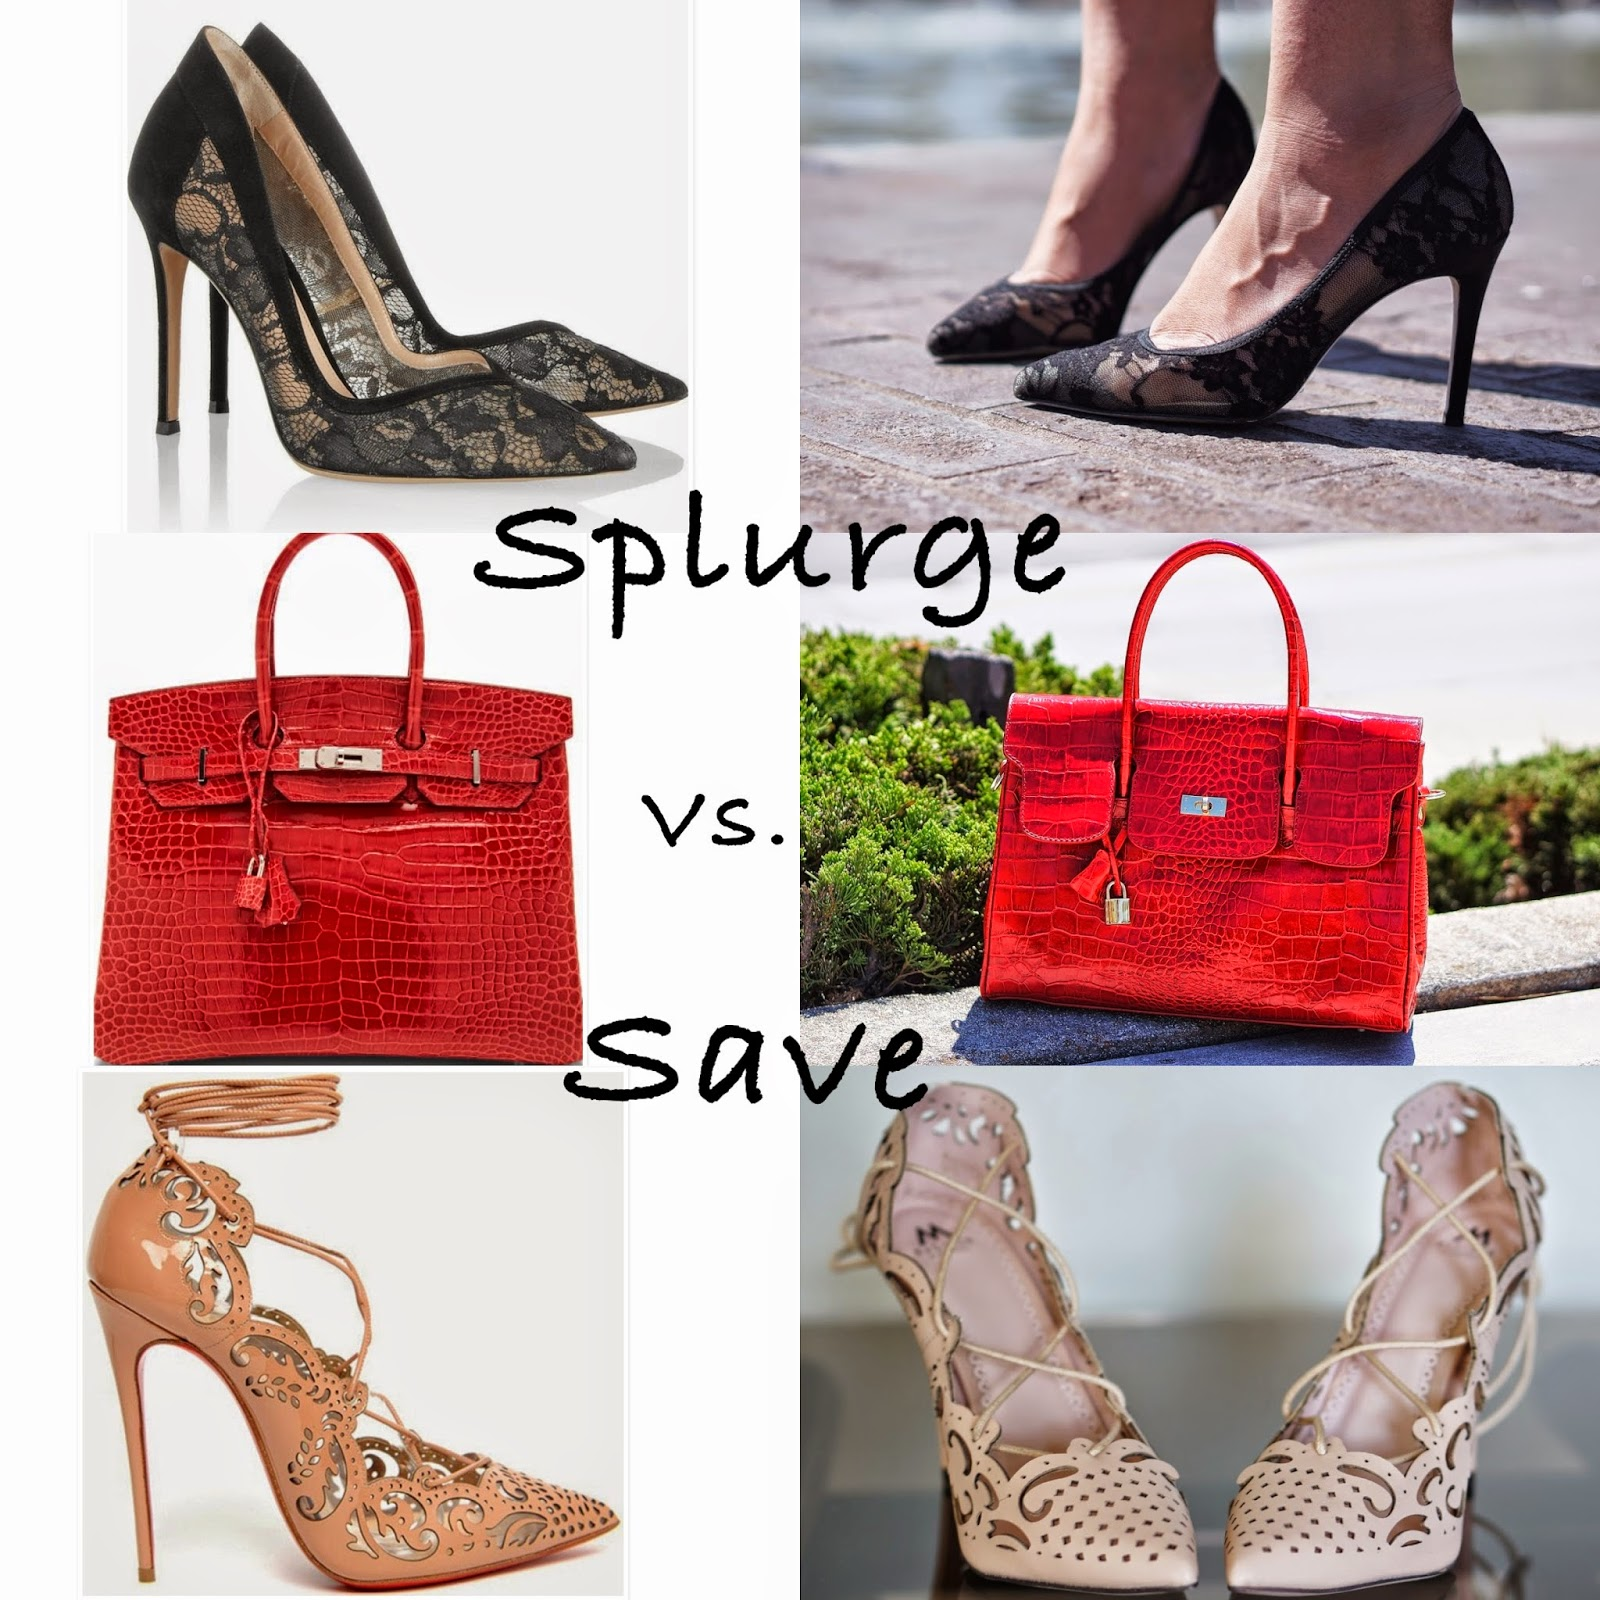 Hermes 35cm Crocodile Birkin Red, Gianvito Rossi Lace Pumps, Black Lace Heels,Shoemint Lace heels